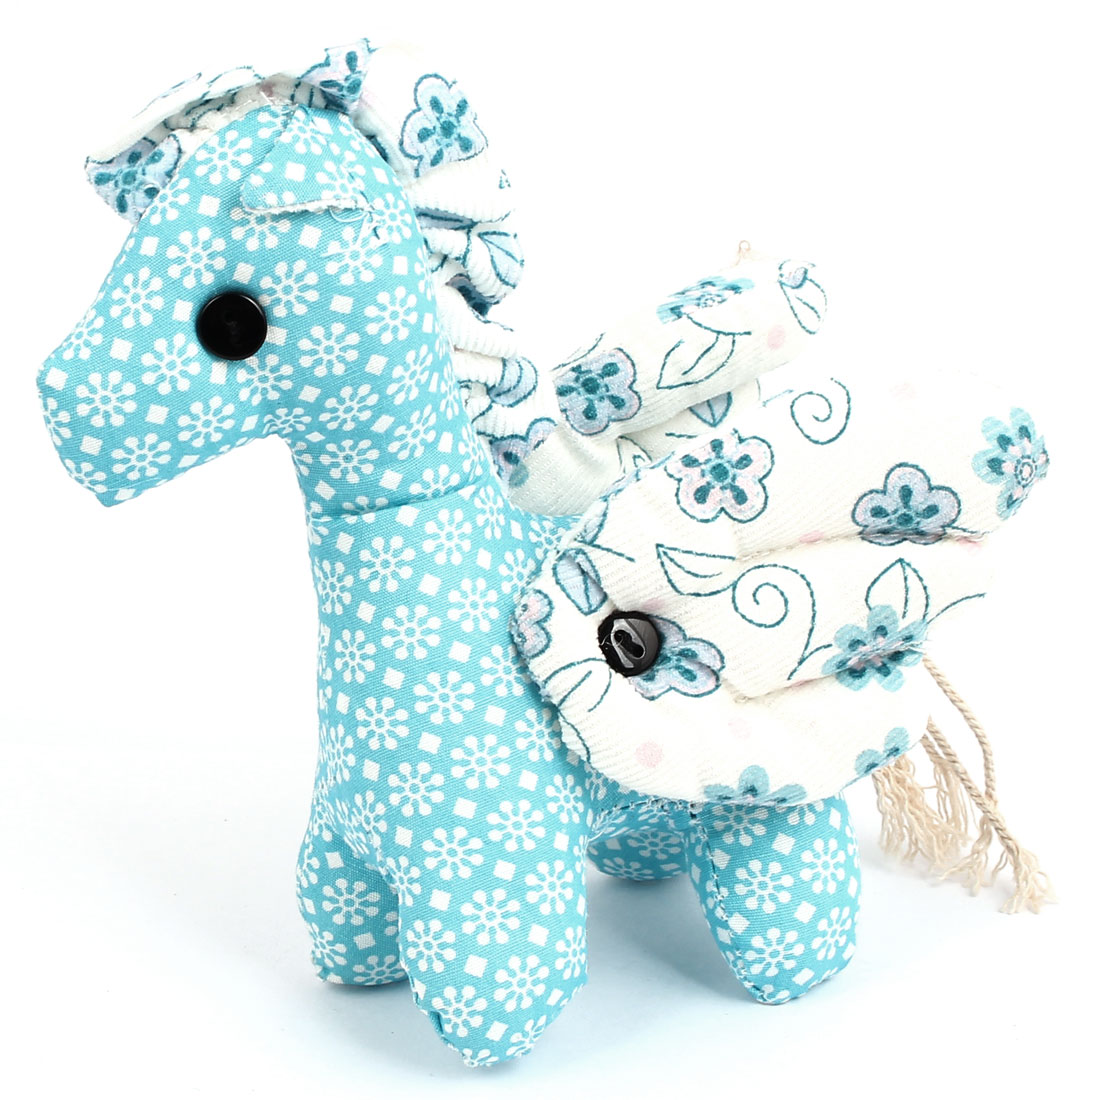 Metal Ball Chain Flower Pattern Bag Decoration Winged Horse Doll Toy Pendant Blue